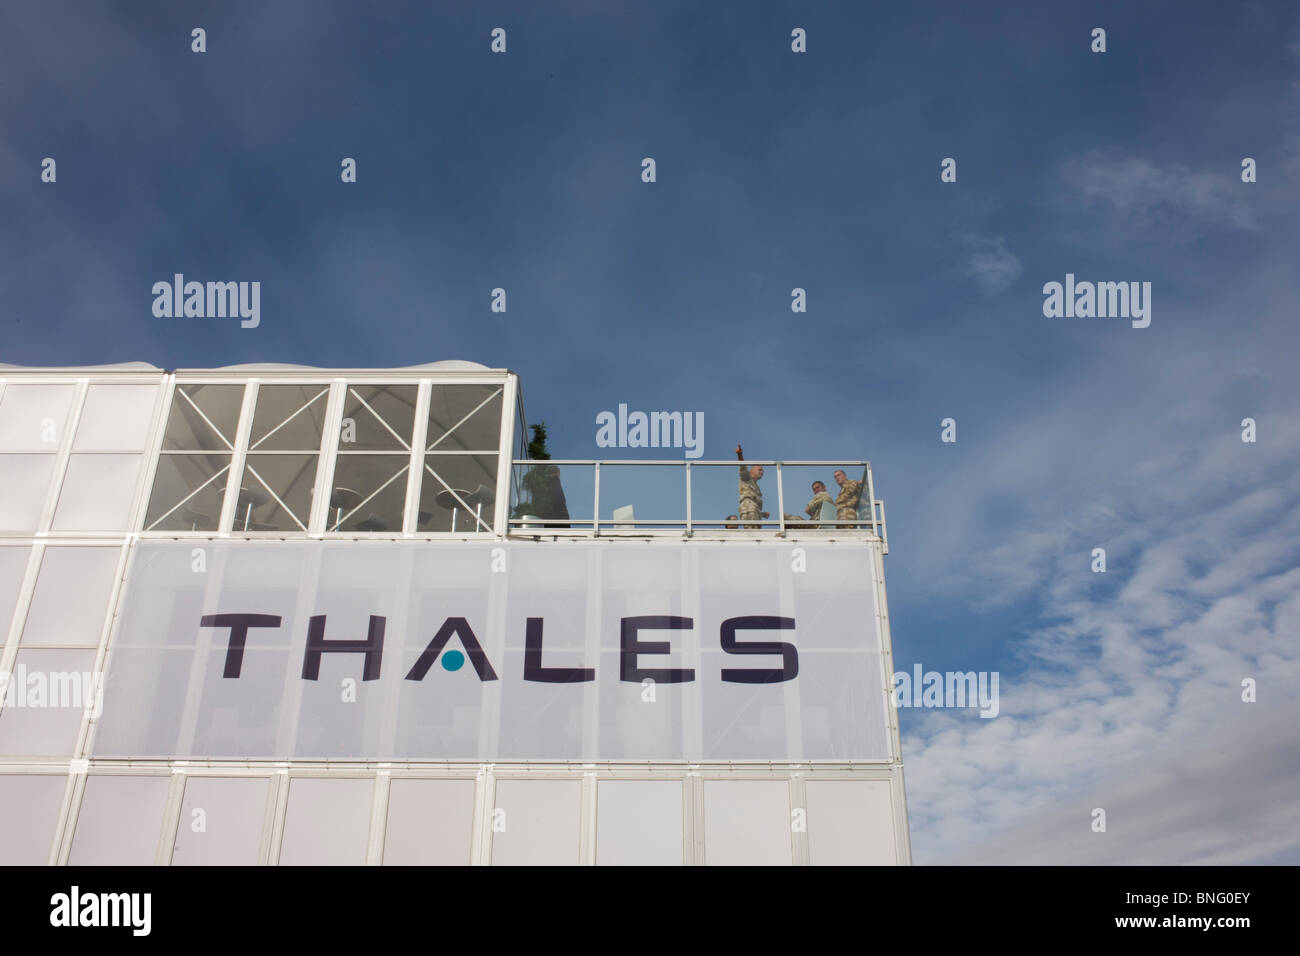 Military guests of Aerospace manufacturer Thales hospitality chalet at the Farnborough Airshow. - Stock Image